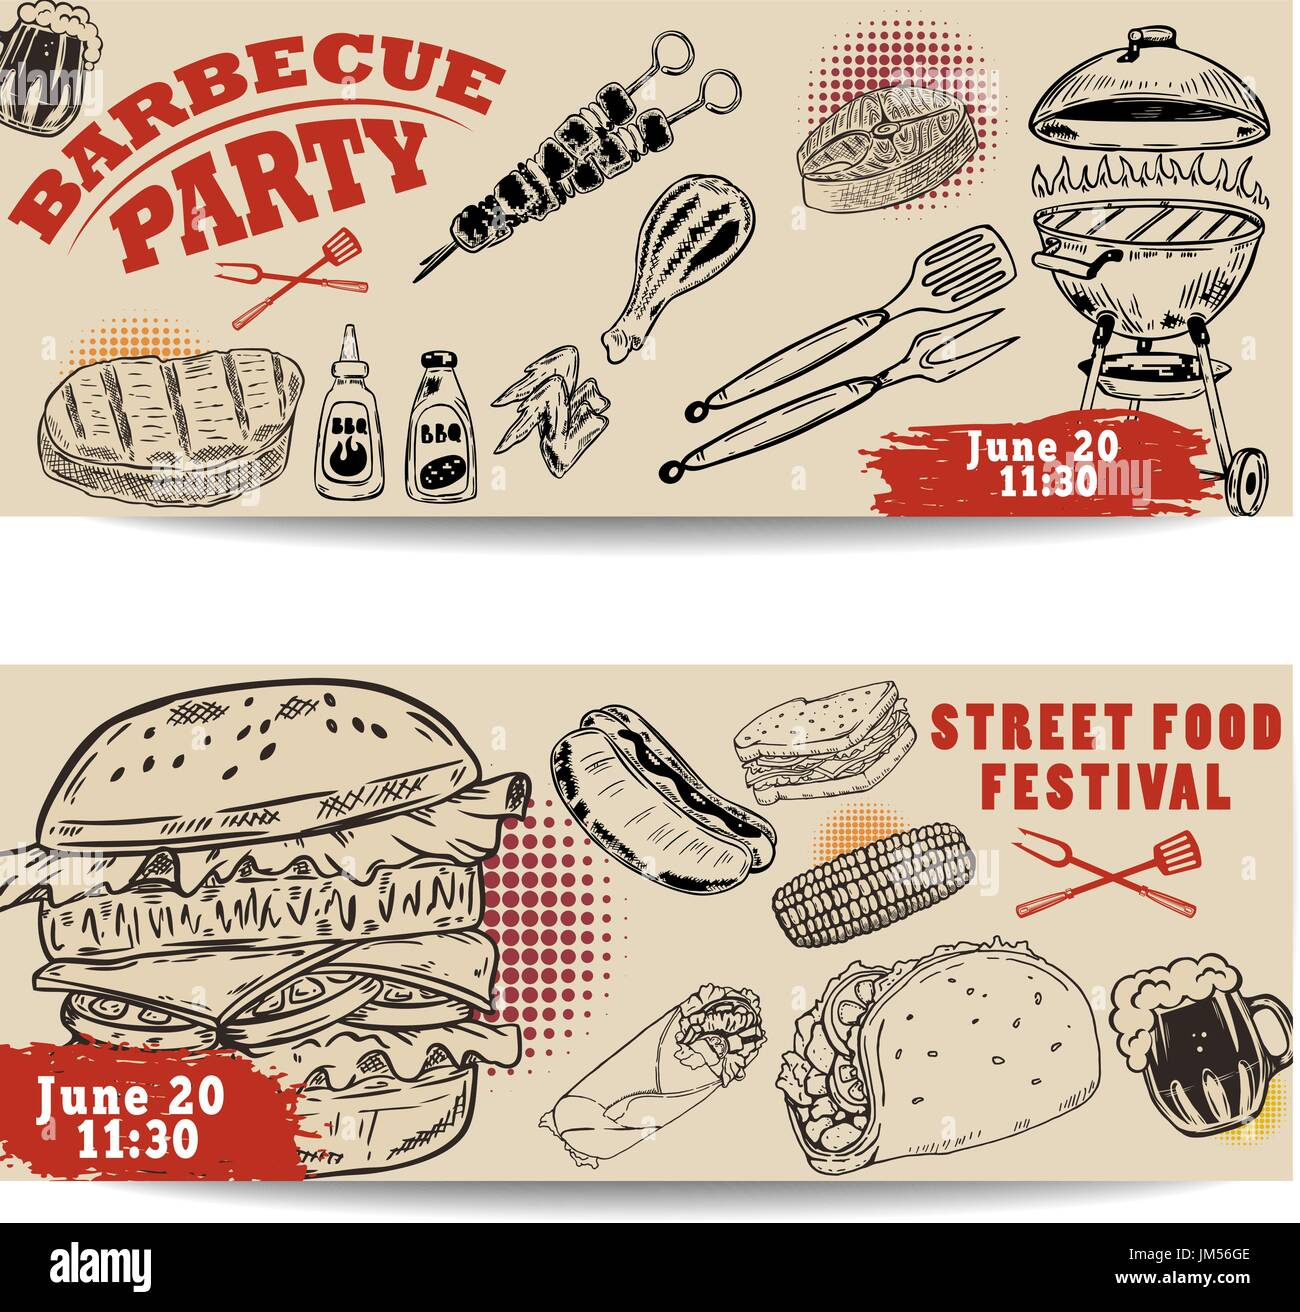 Set of bbq party invitation templates on light background. Grill, beer,meat, burger ,steak. Street food festival Stock Vector